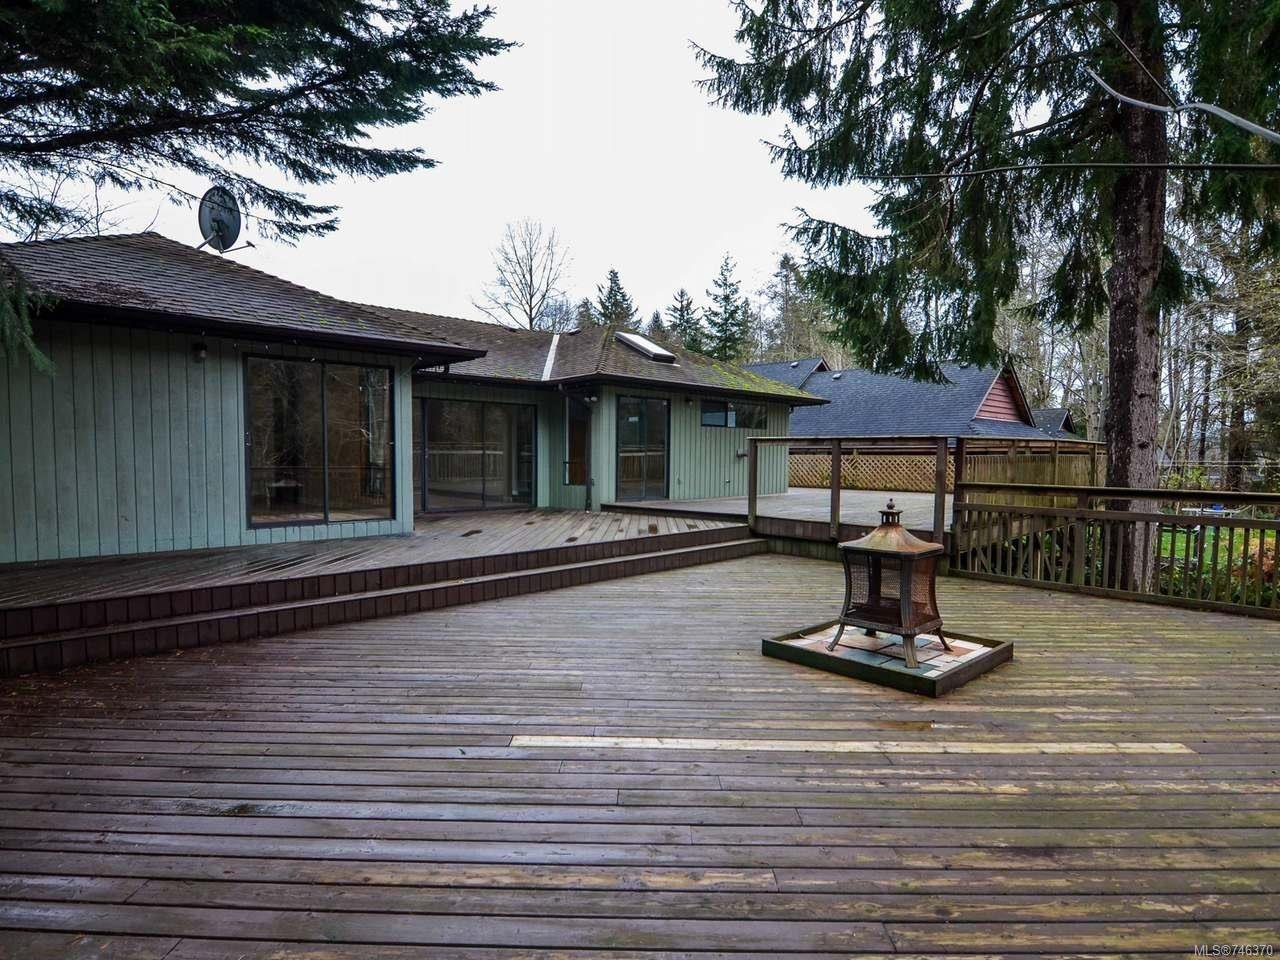 Photo 11: Photos: 1720 Galerno Rd in CAMPBELL RIVER: CR Campbell River Central House for sale (Campbell River)  : MLS®# 746370